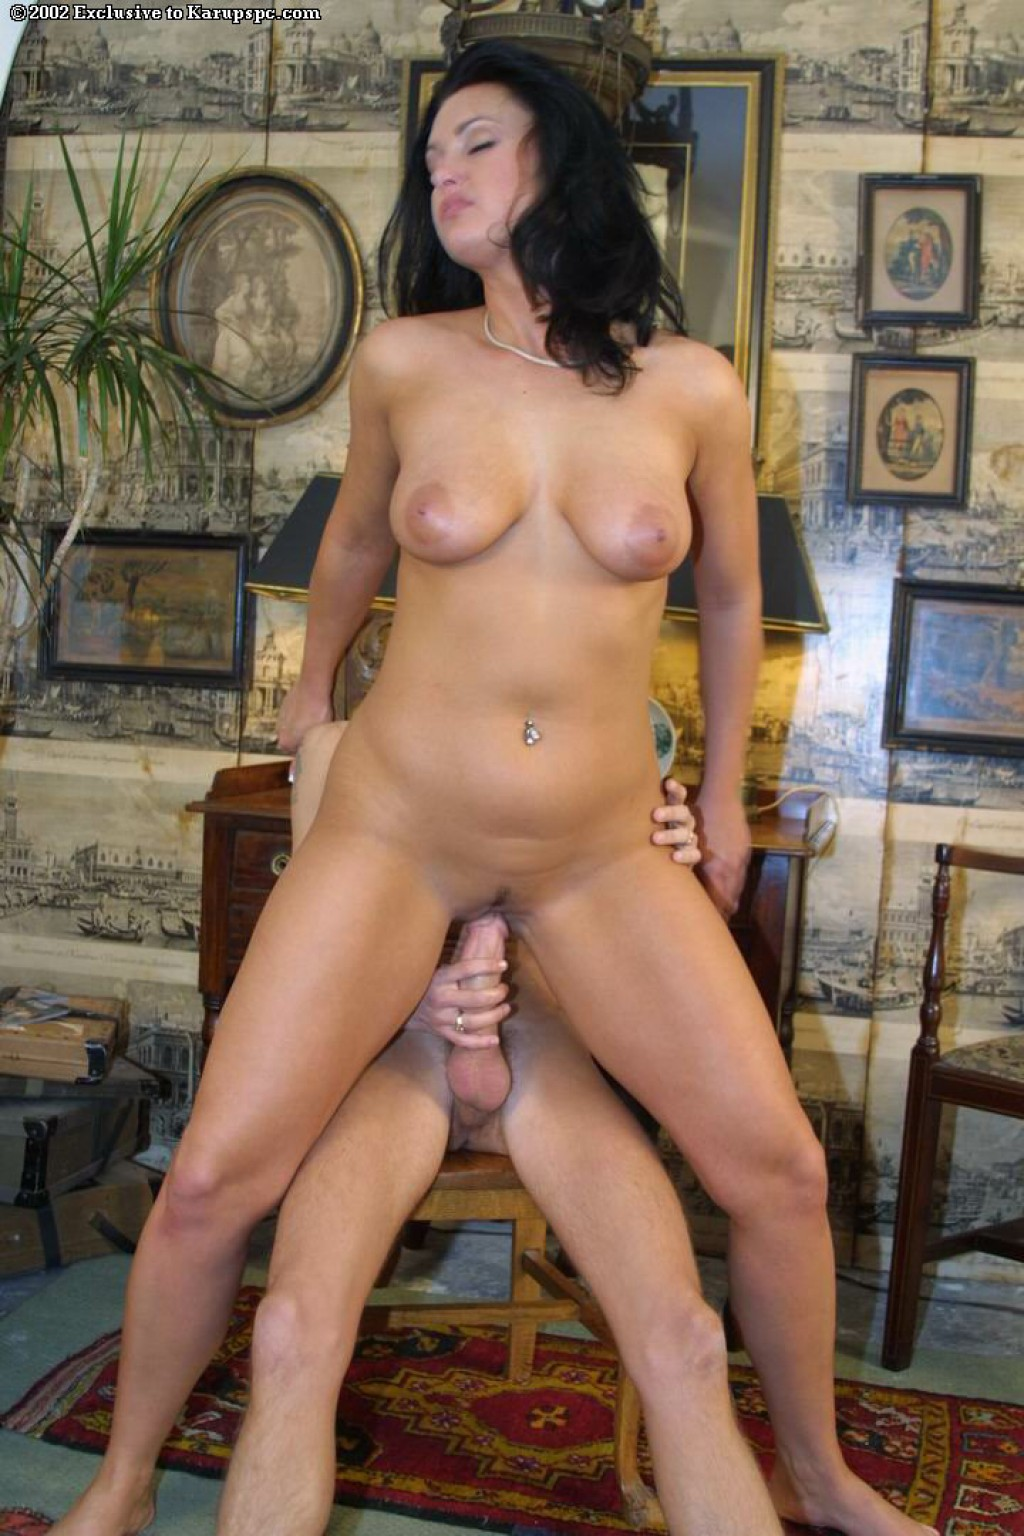 Michele Raven nude pics in Michele from KARUPSPC